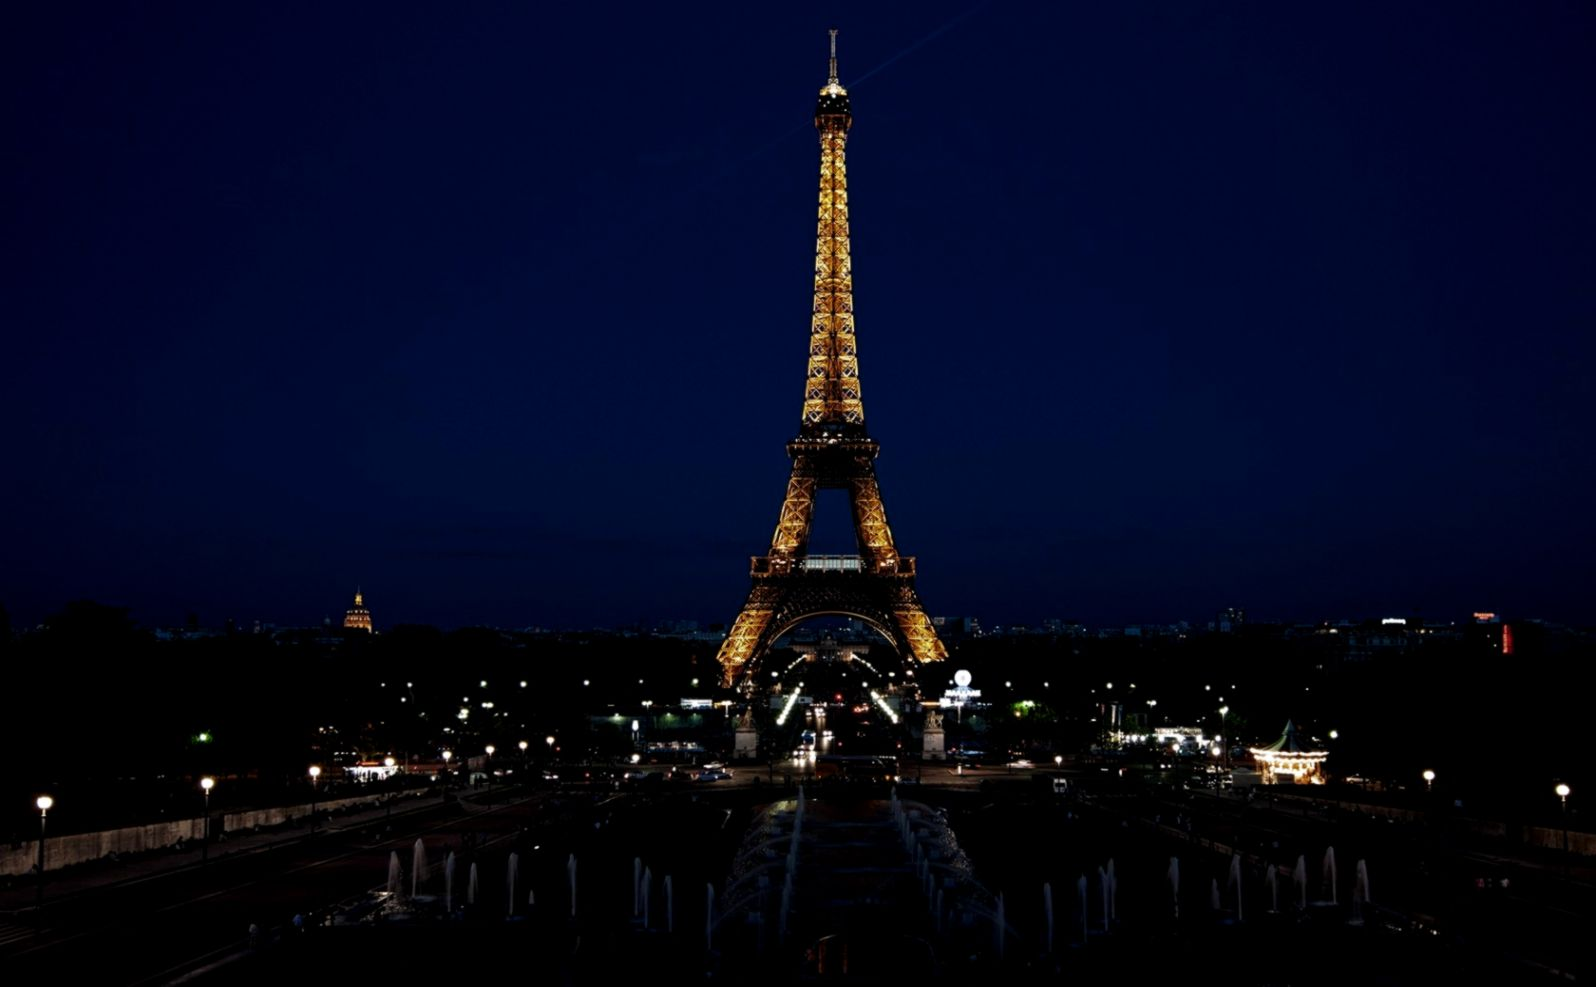 Paris France Eiffel tower City Night Lights wallpaper and